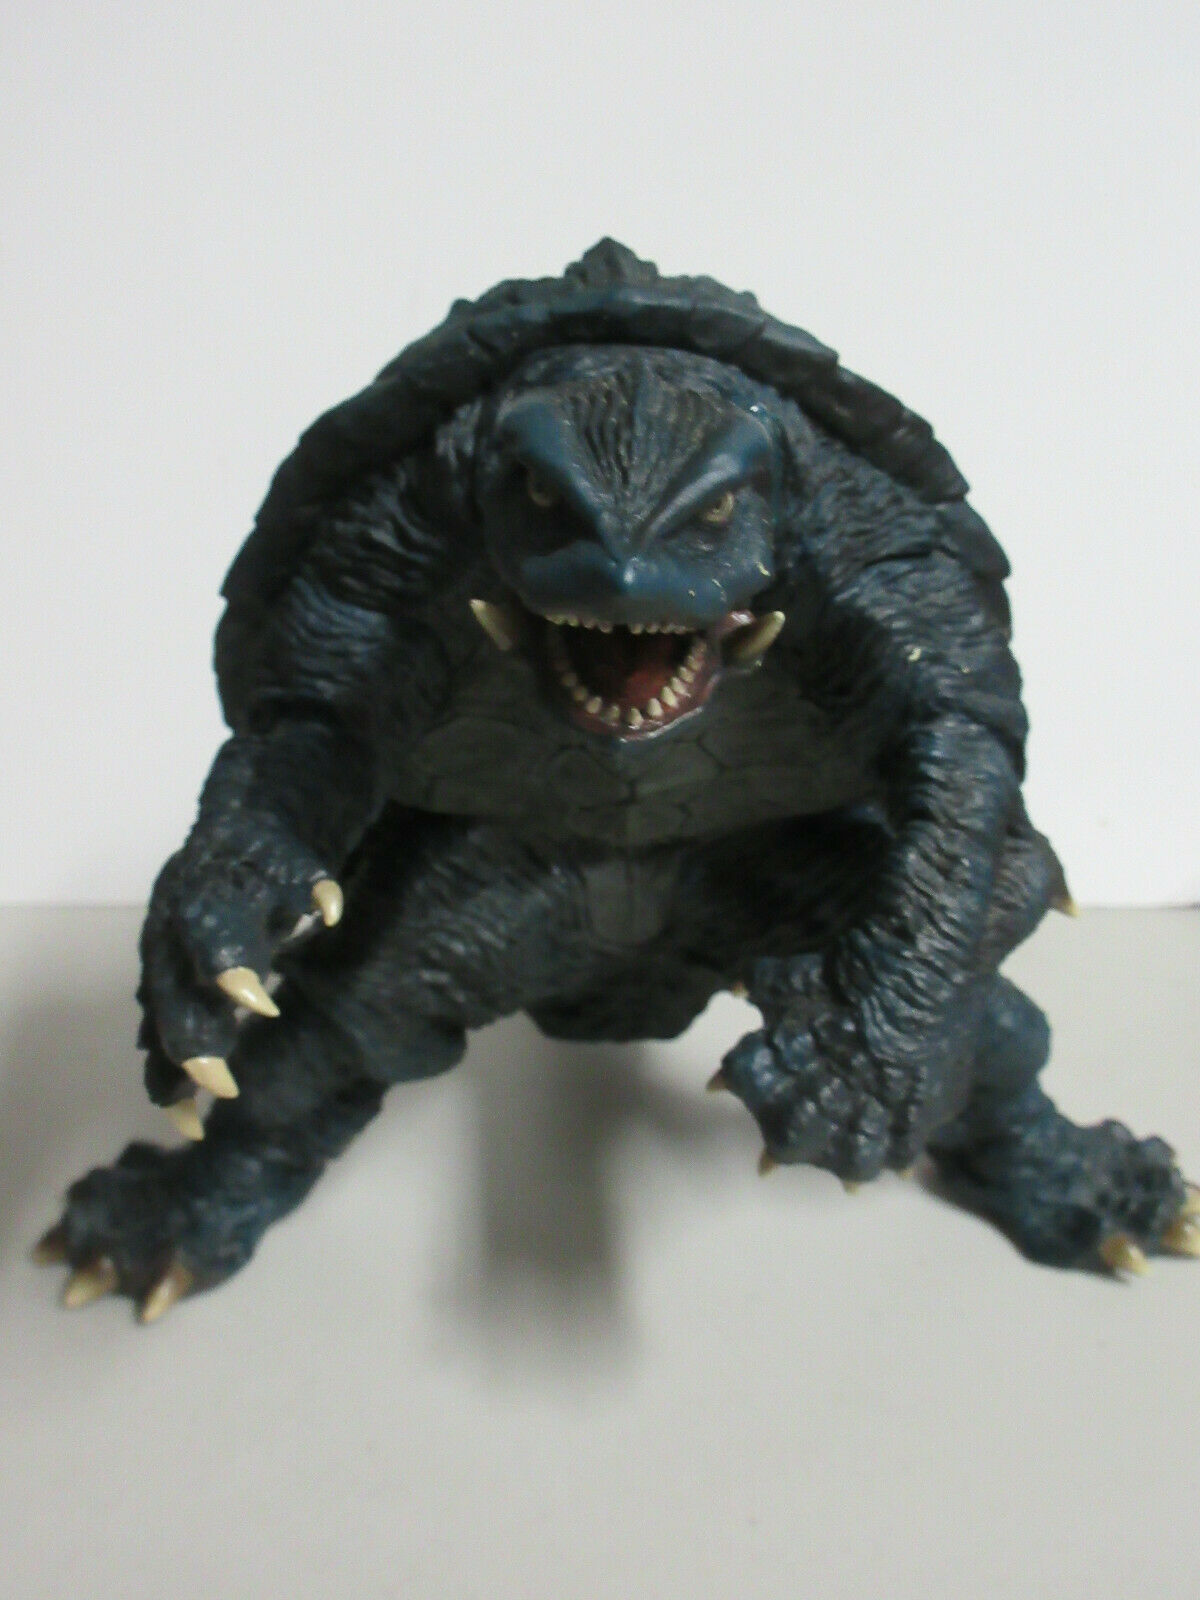 Gamera X Plus 1999 Vinyl Kit Built into Figure Kaiju Fun